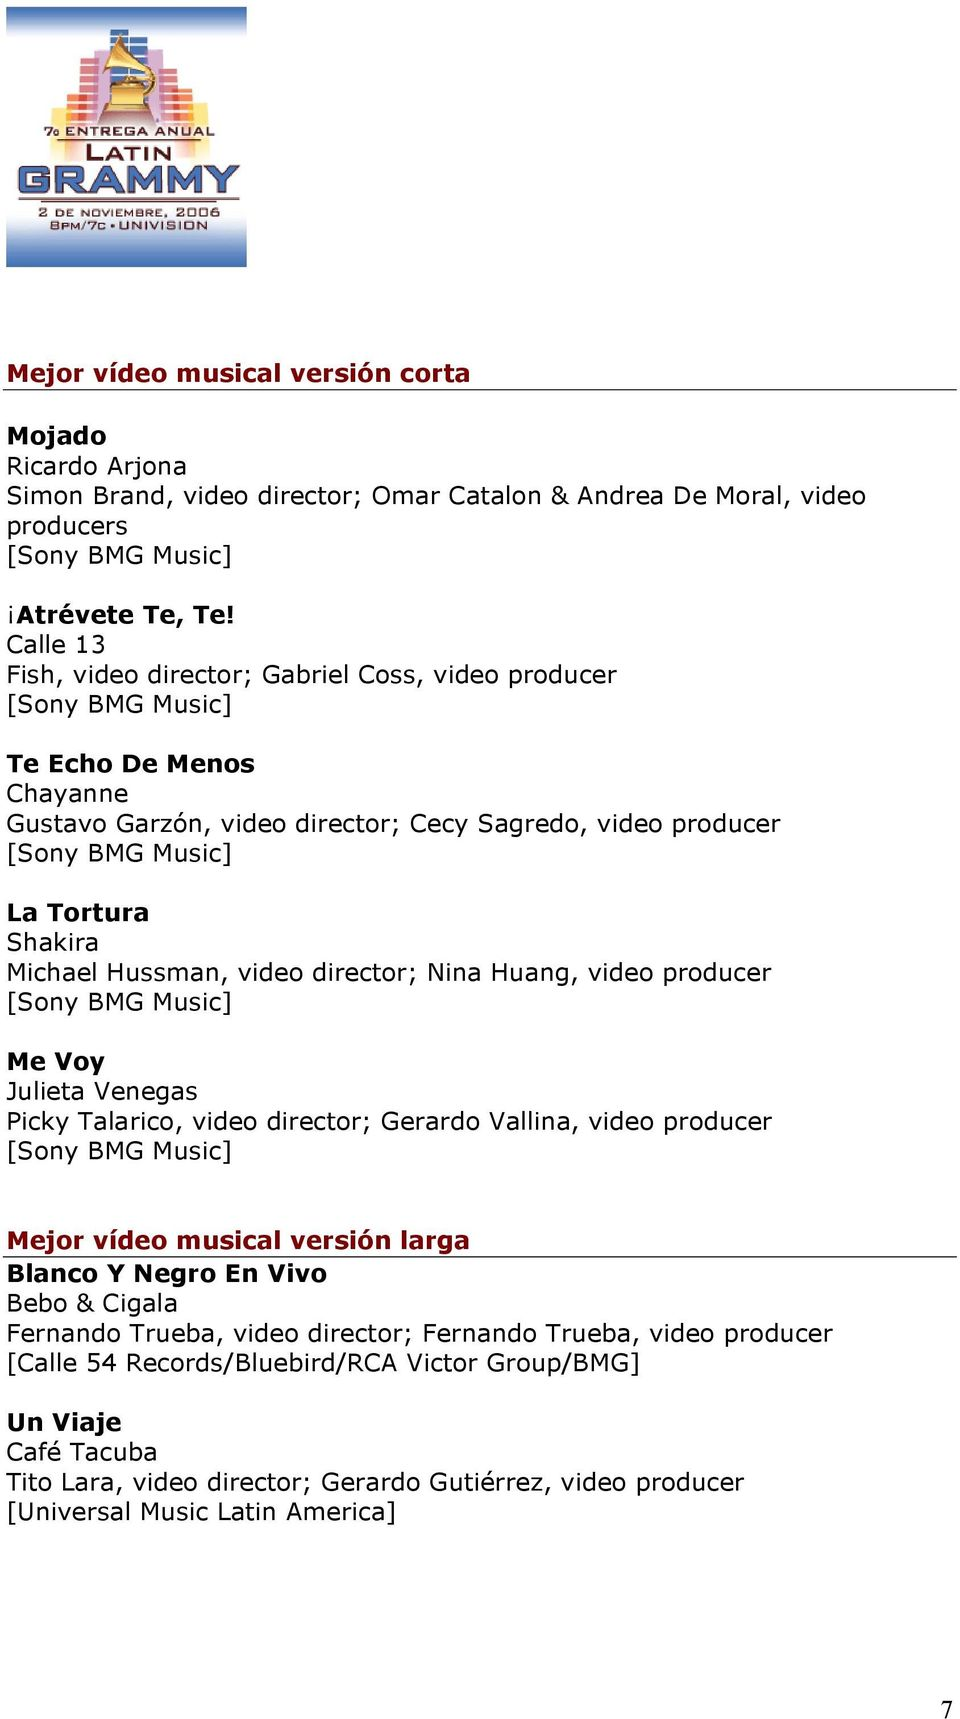 director; Nina Huang, video producer Me Voy Julieta Venegas Picky Talarico, video director; Gerardo Vallina, video producer Mejor vídeo musical versión larga Blanco Y Negro En Vivo Bebo &